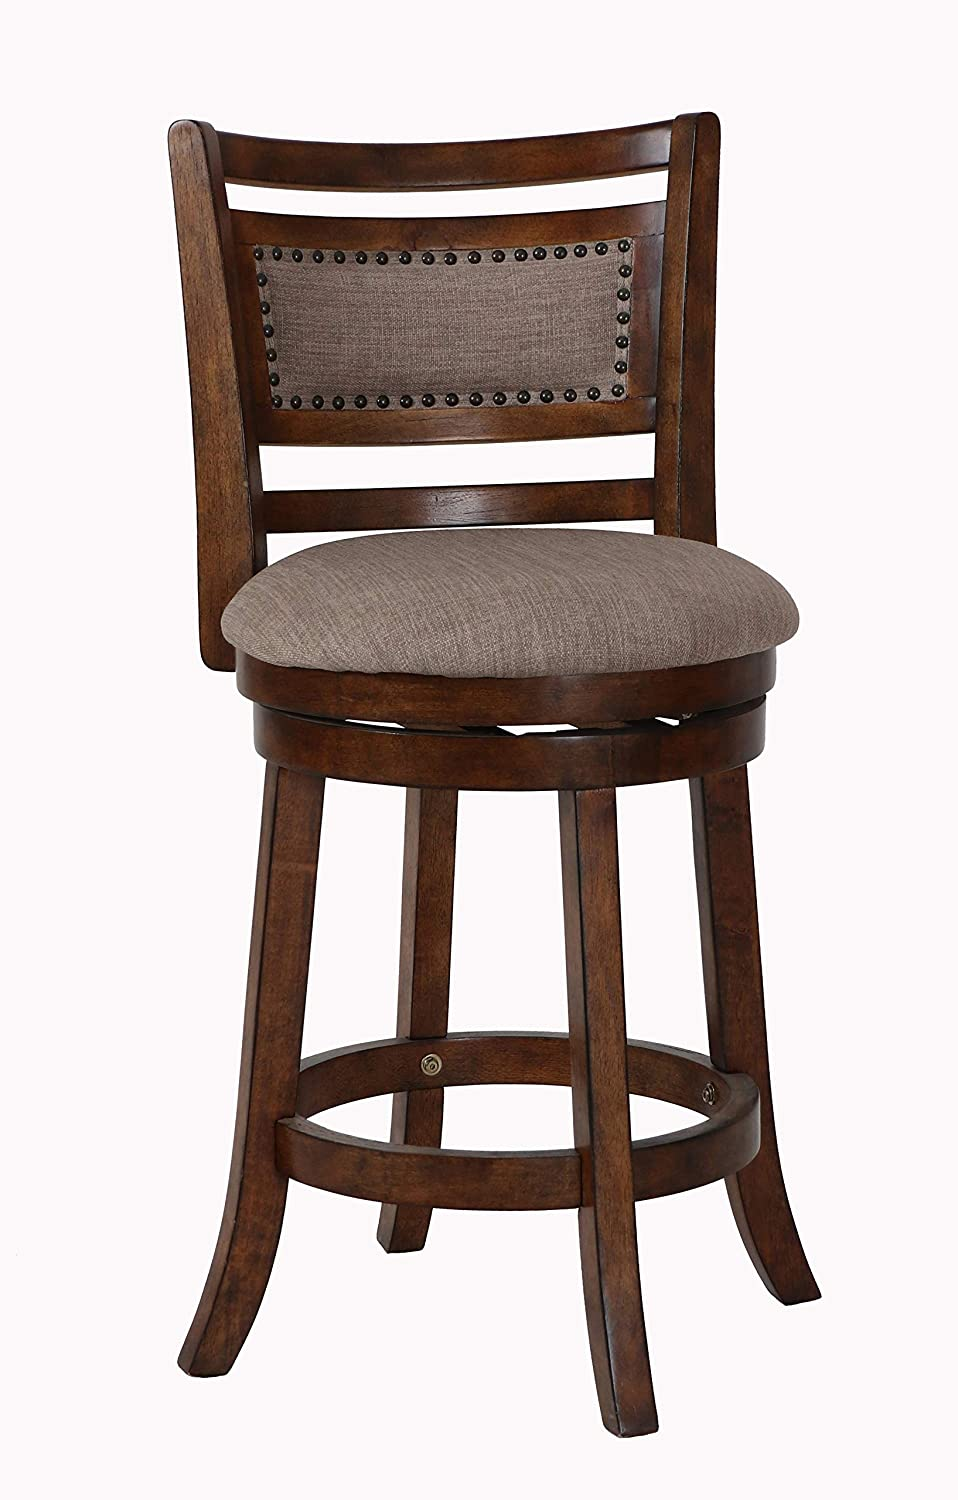 New Classic Furniture New Classic Aberdeen Swivel Counter Stool, Dark Brown, 24-Inch